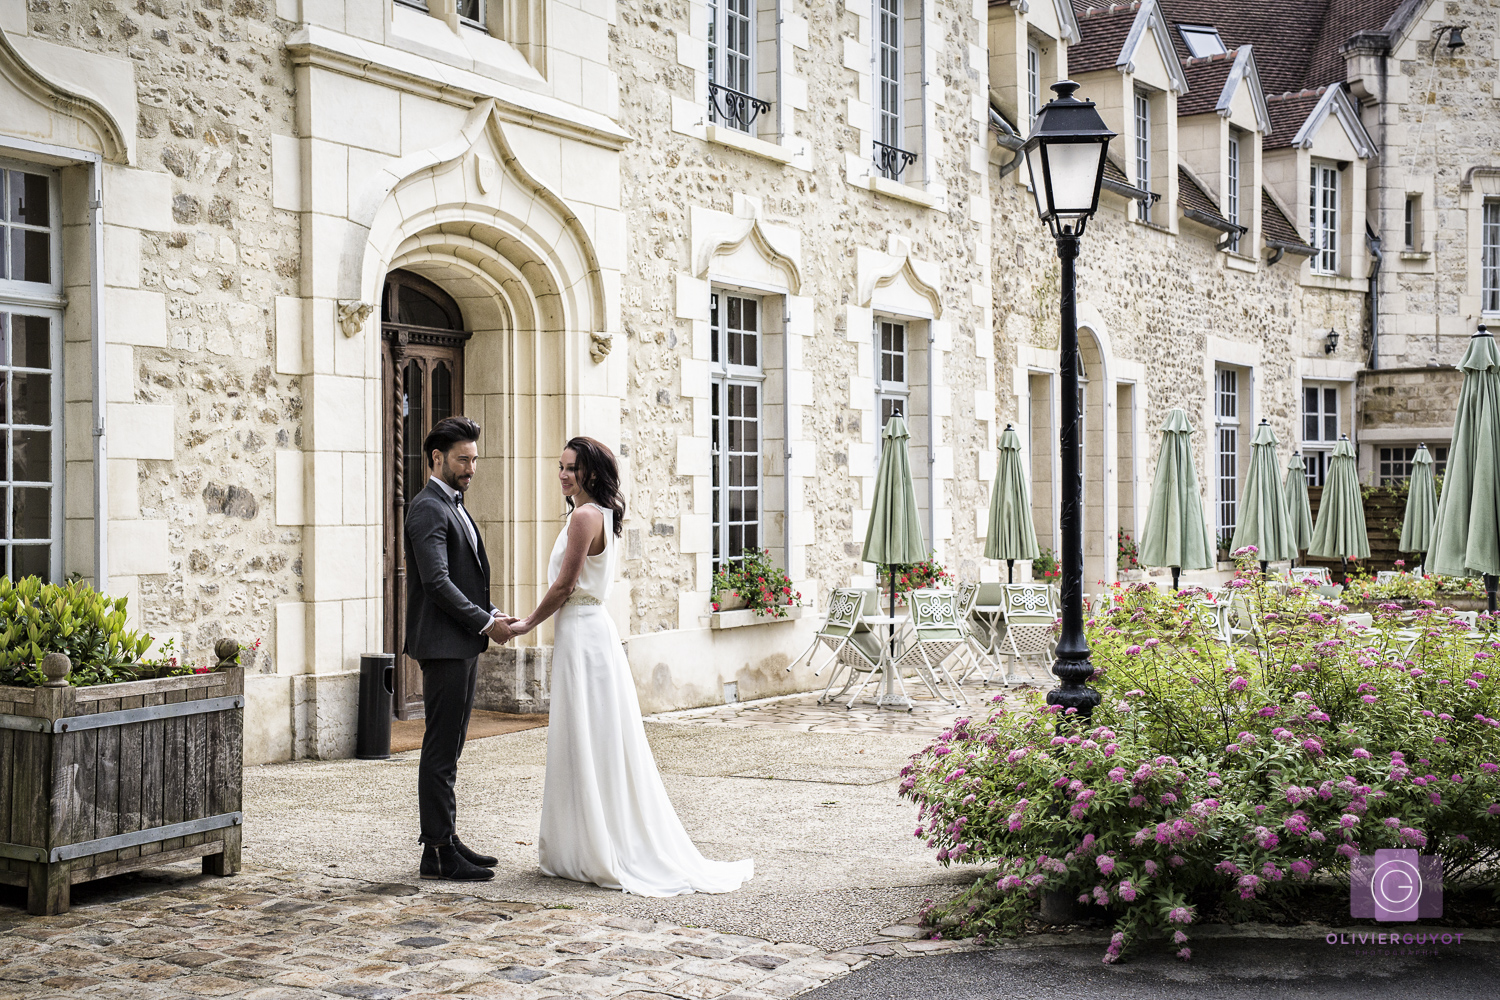 Photographe mariages versailles yvelines 78 for Versailles yvelines